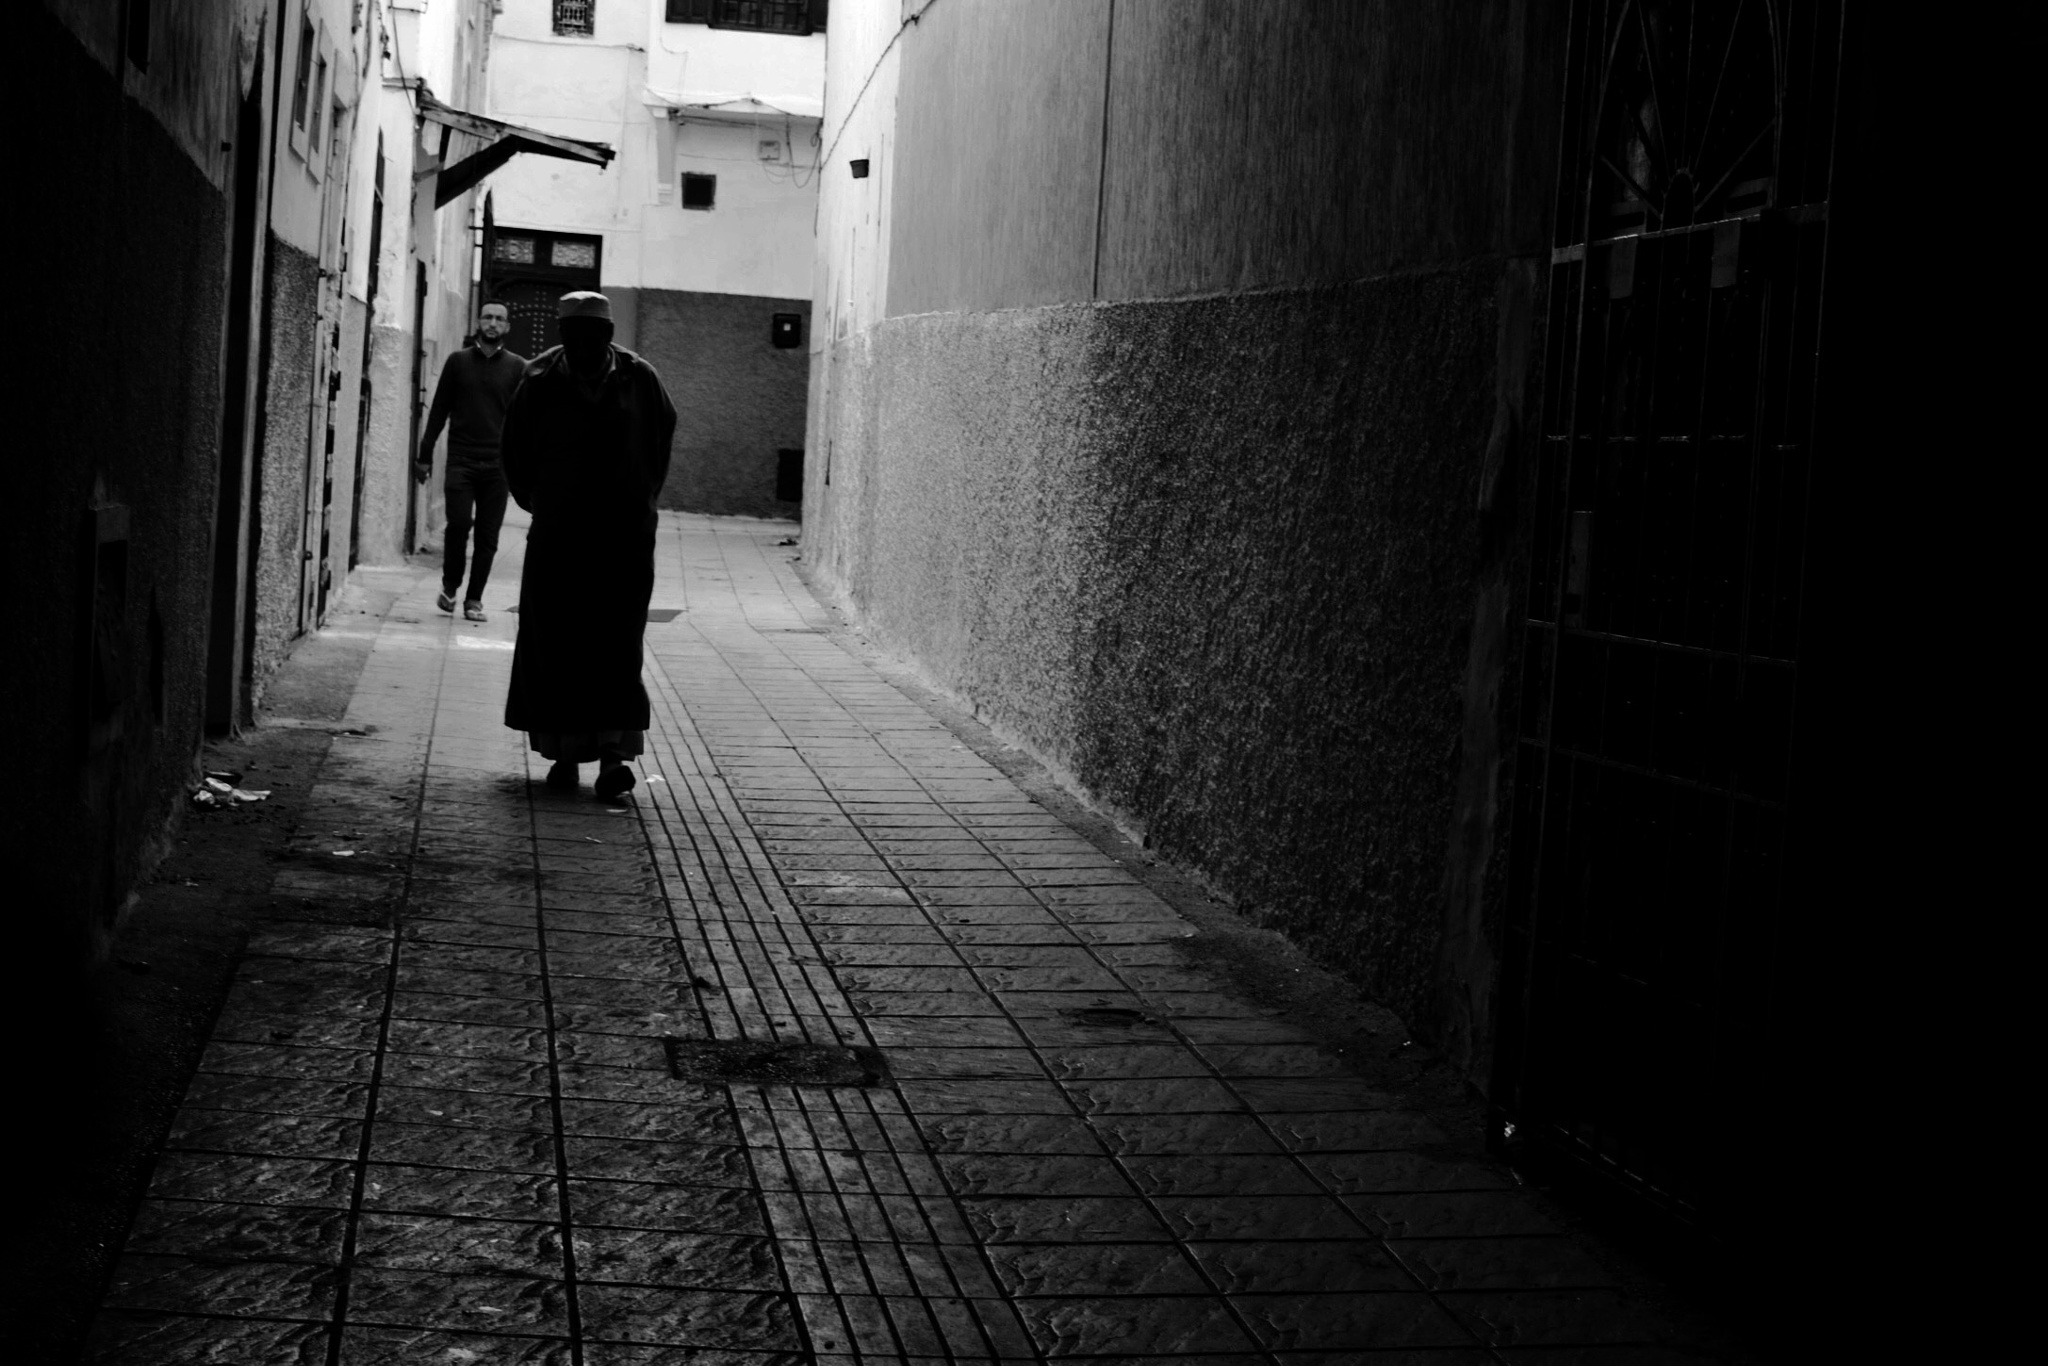 Old City by Elgsam